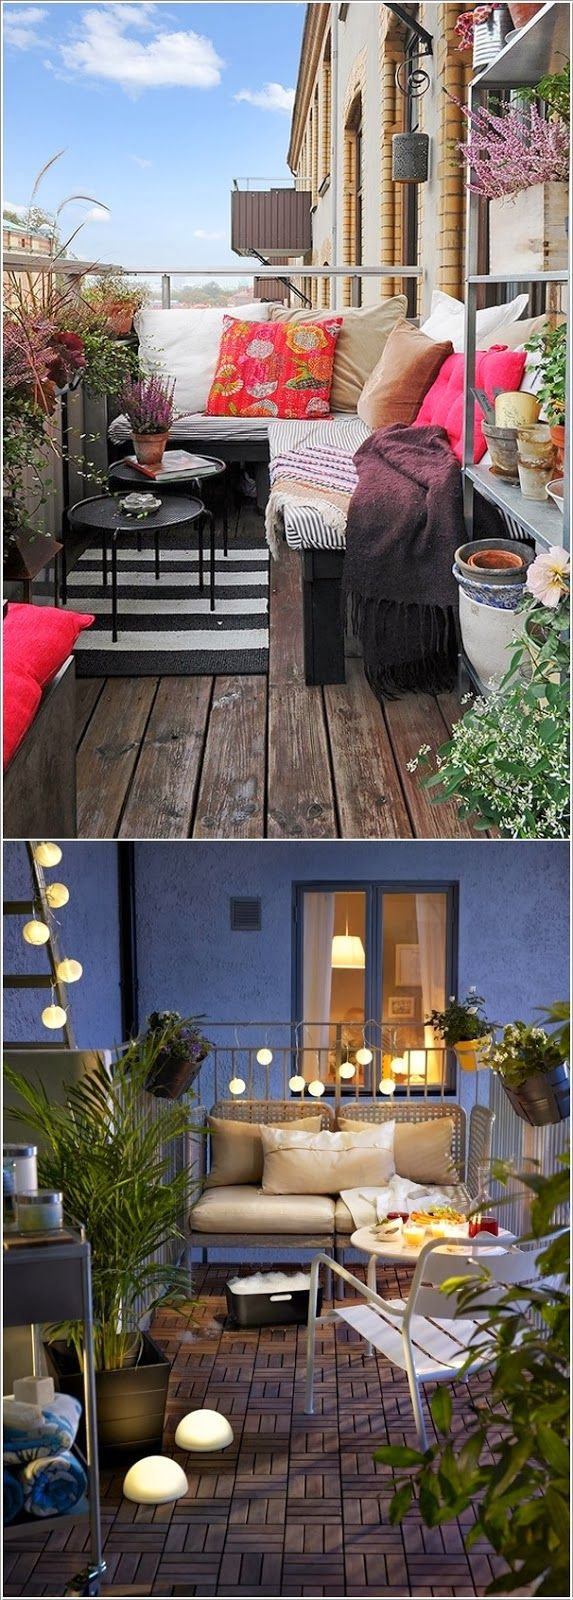 10 Balcony decorating ideas